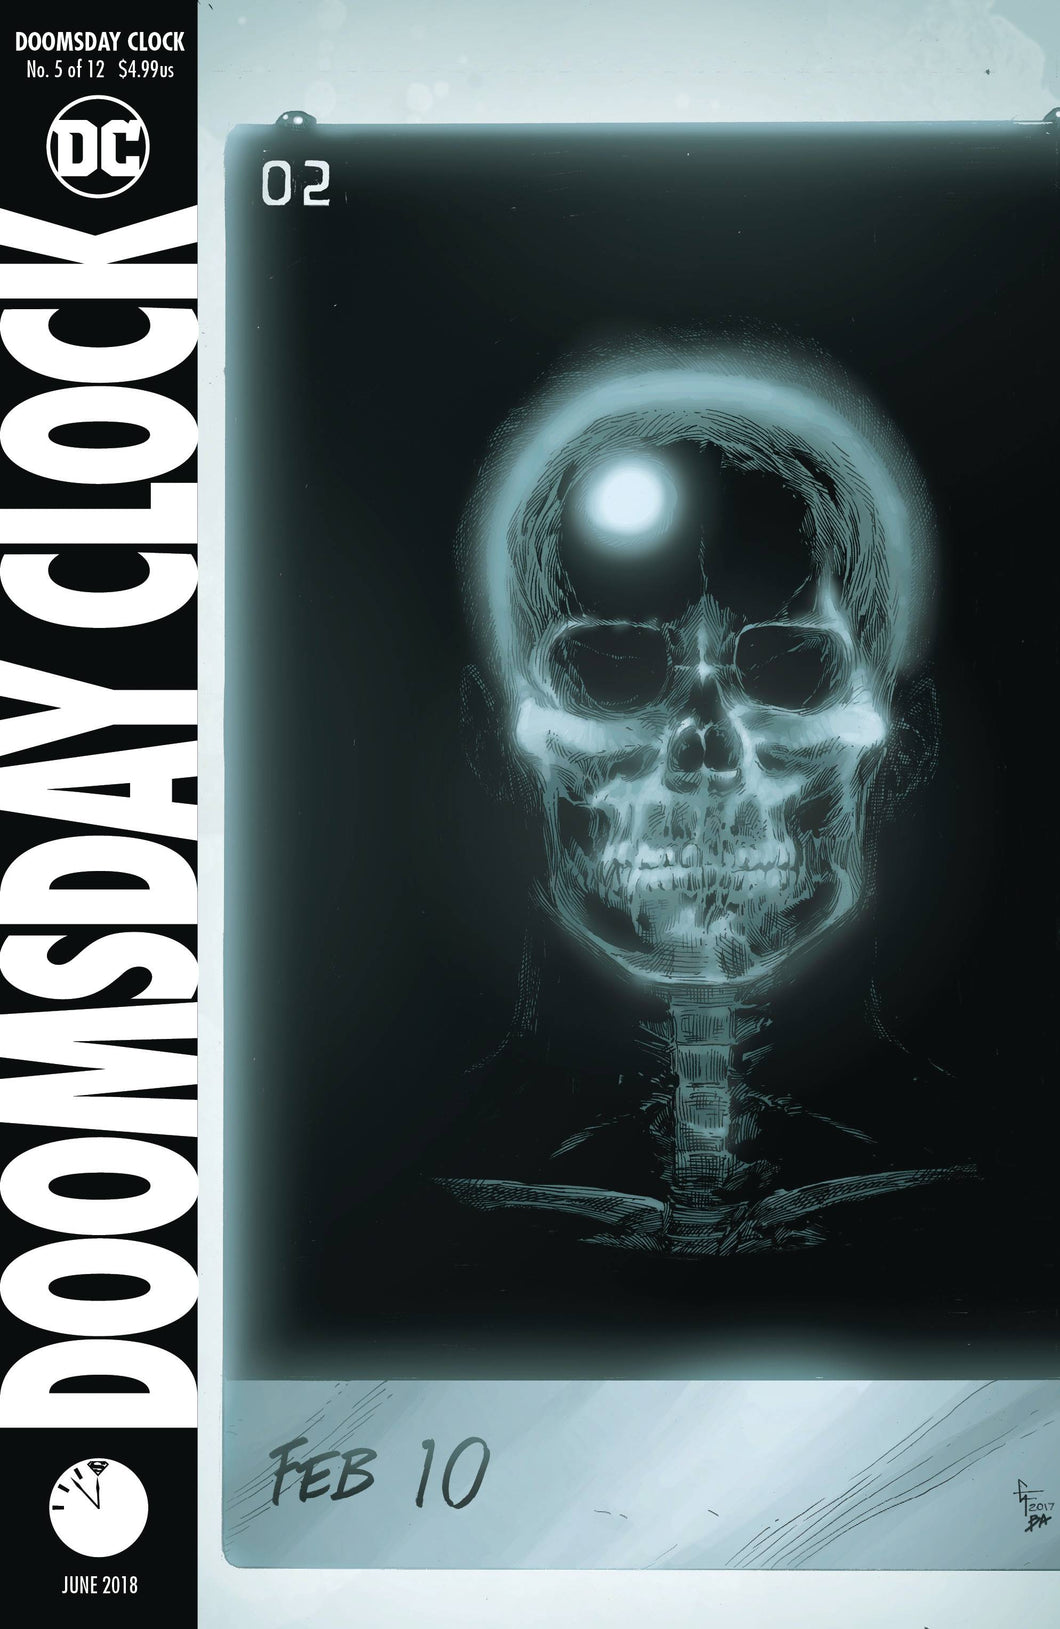 DOOMSDAY CLOCK #5 (OF 12) RELEASE DATE 05/30